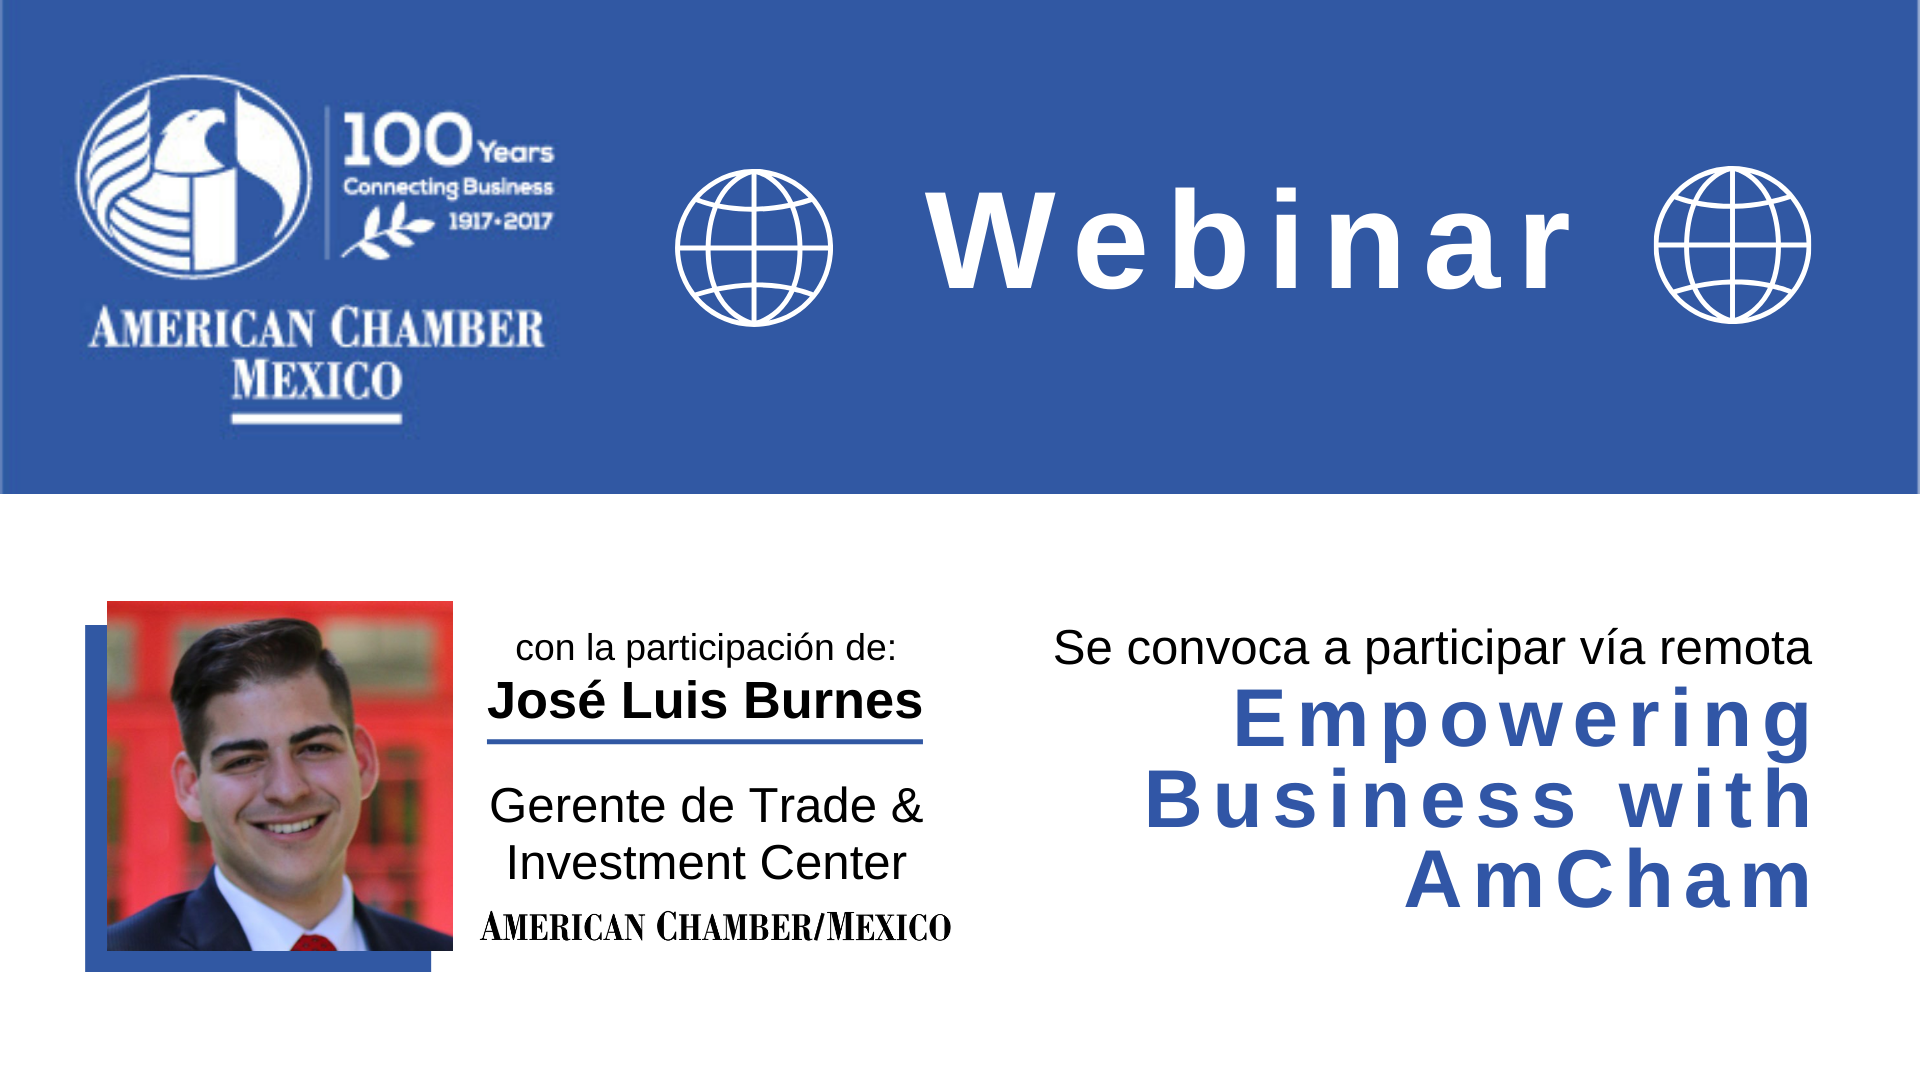 MTY WEBINAR - Empowering Business with AmCham